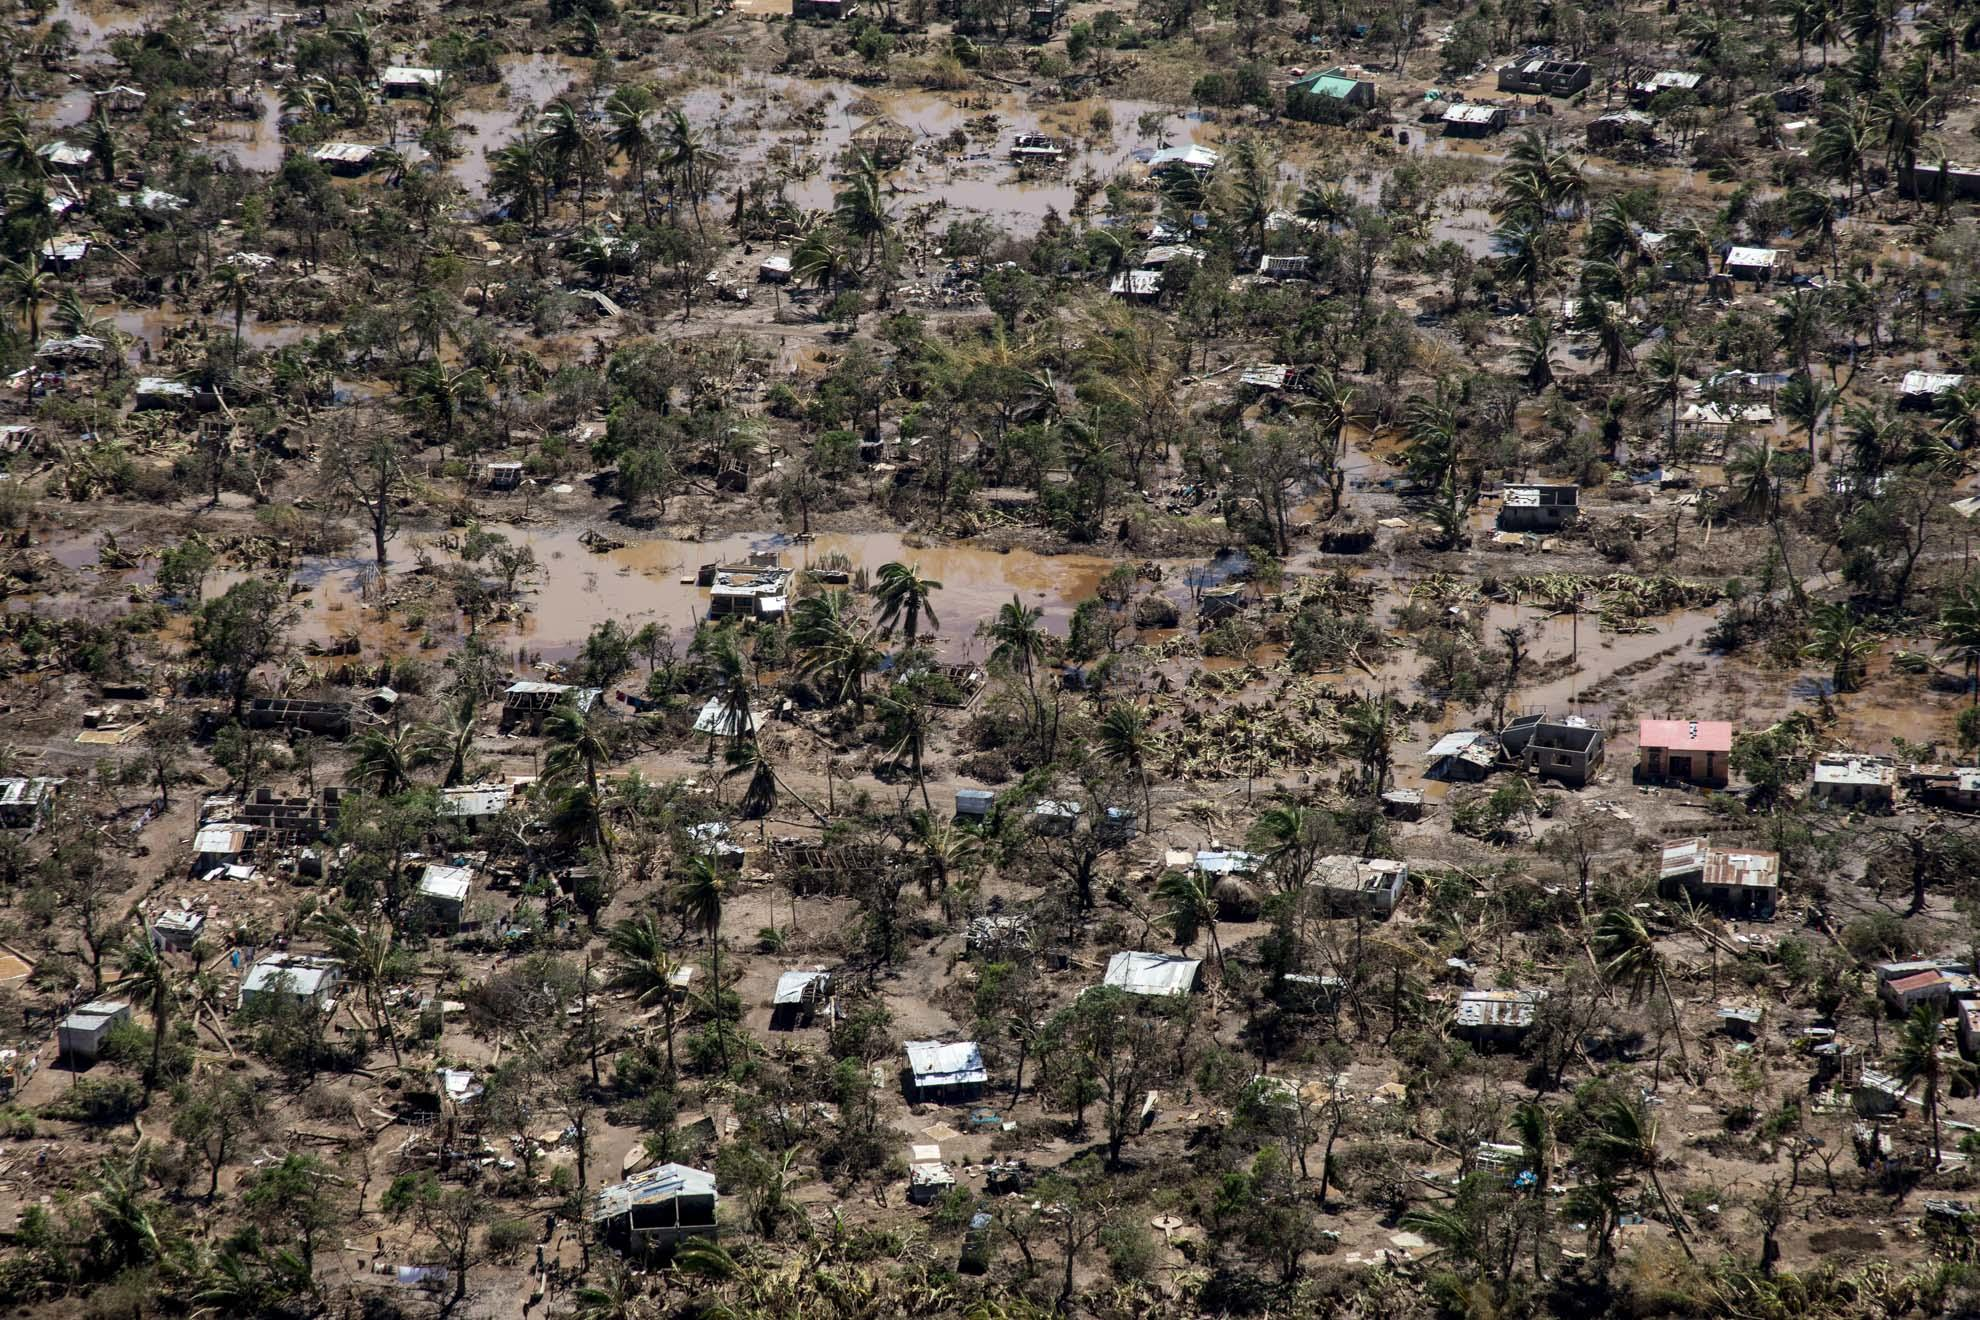 An aerial view of the town of Buzi and the devastation caused by Cyclone Idai in Mozambique, March 2019.